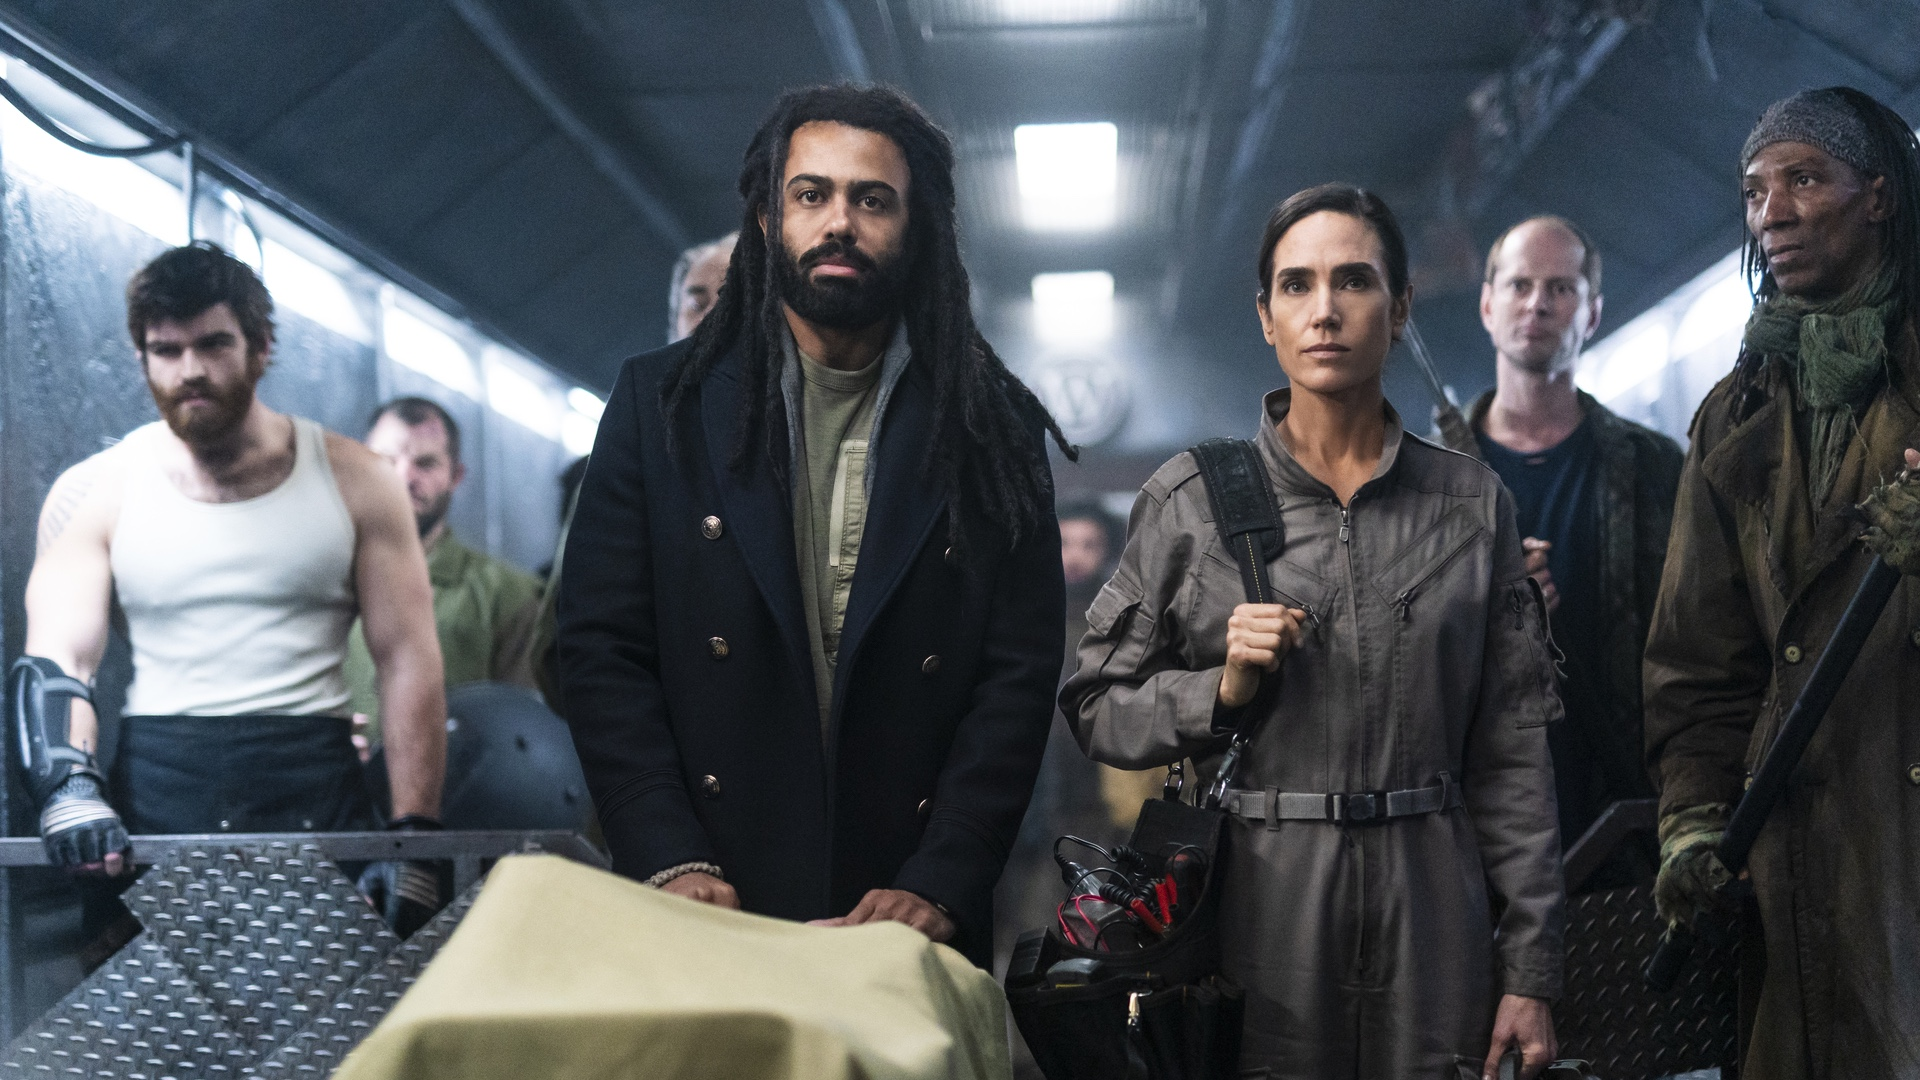 watch Snowpiercer season 2 online